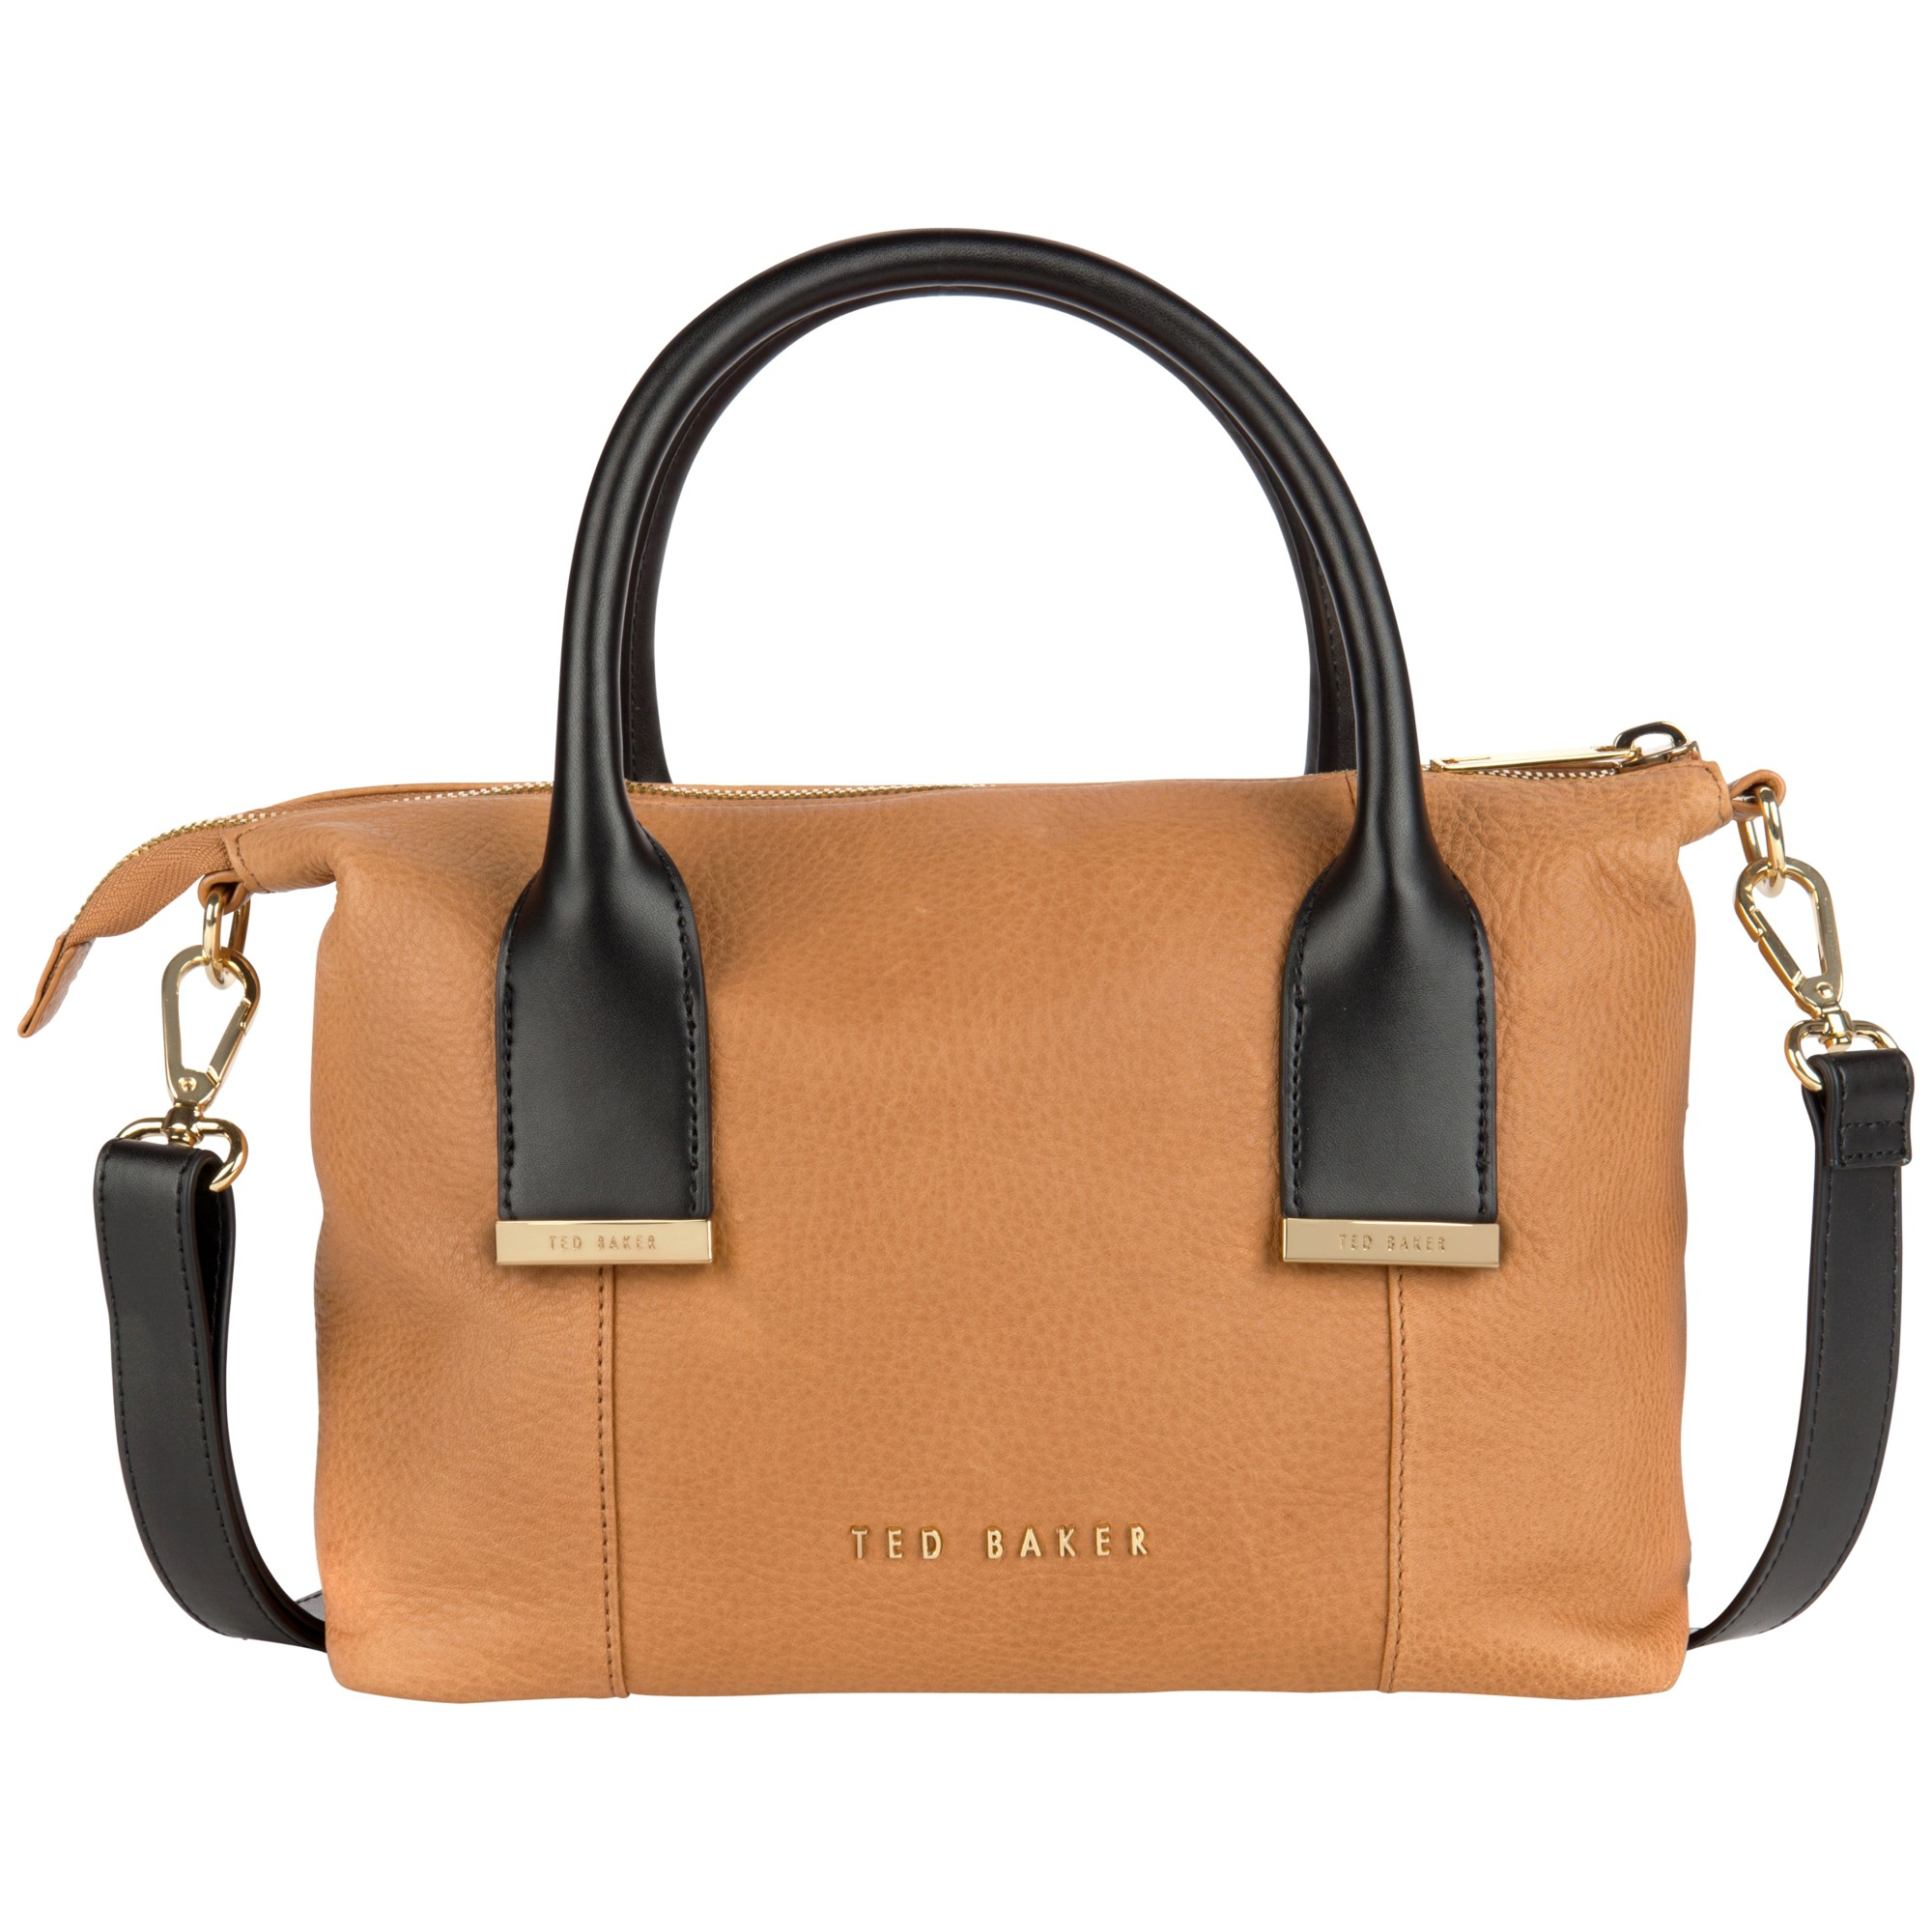 762e3714f Ted Baker Amelia Leather Mini Tote Bag in Brown - Lyst